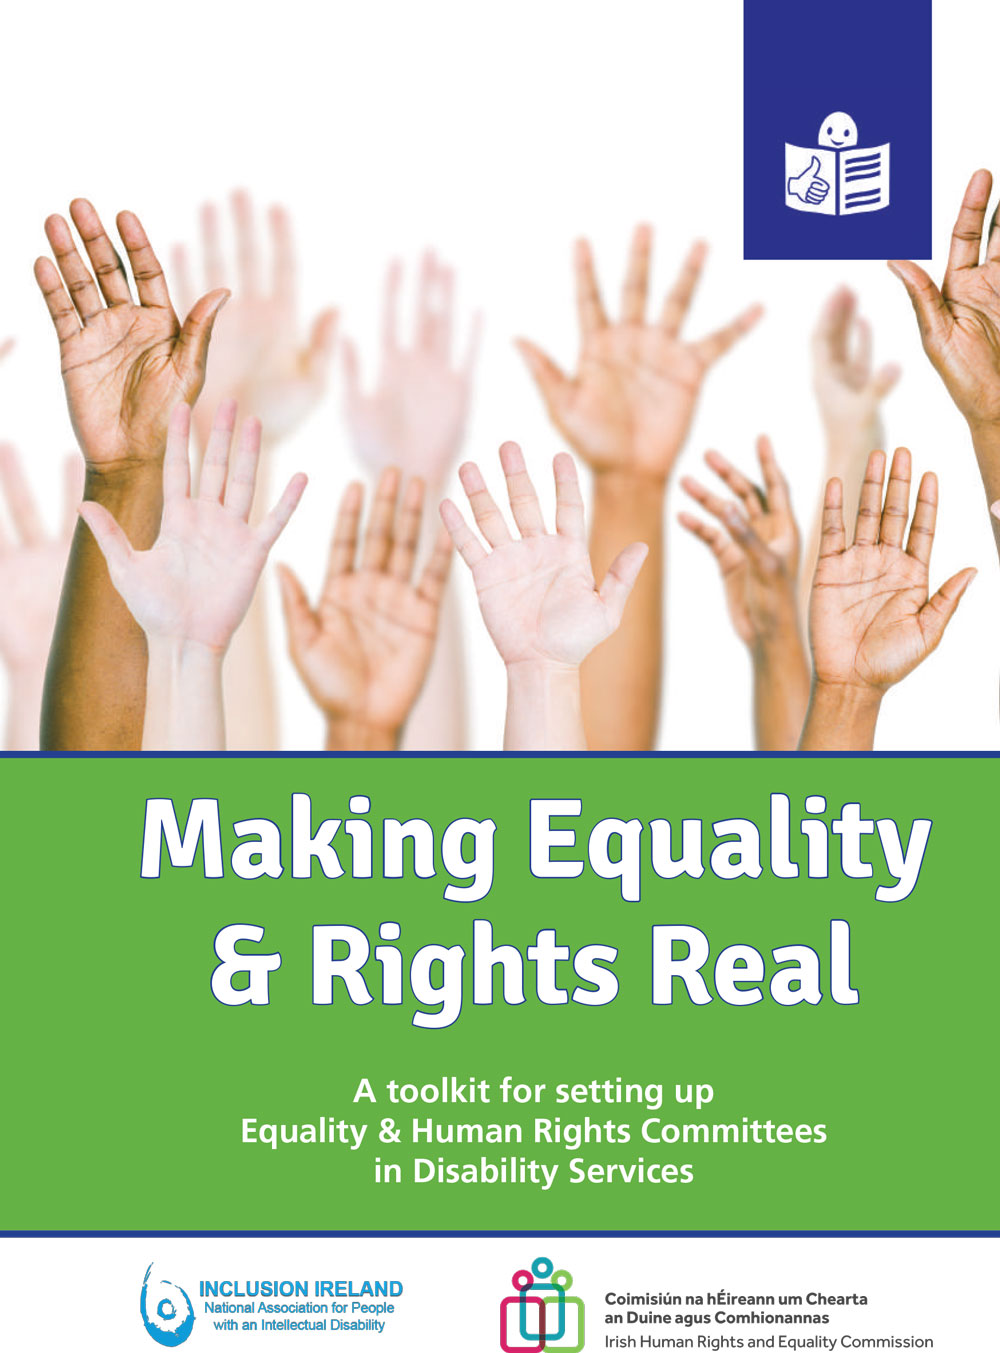 Making Equality & Rights Real: A toolkit for setting up Equality & Rights Committees in Disability Services